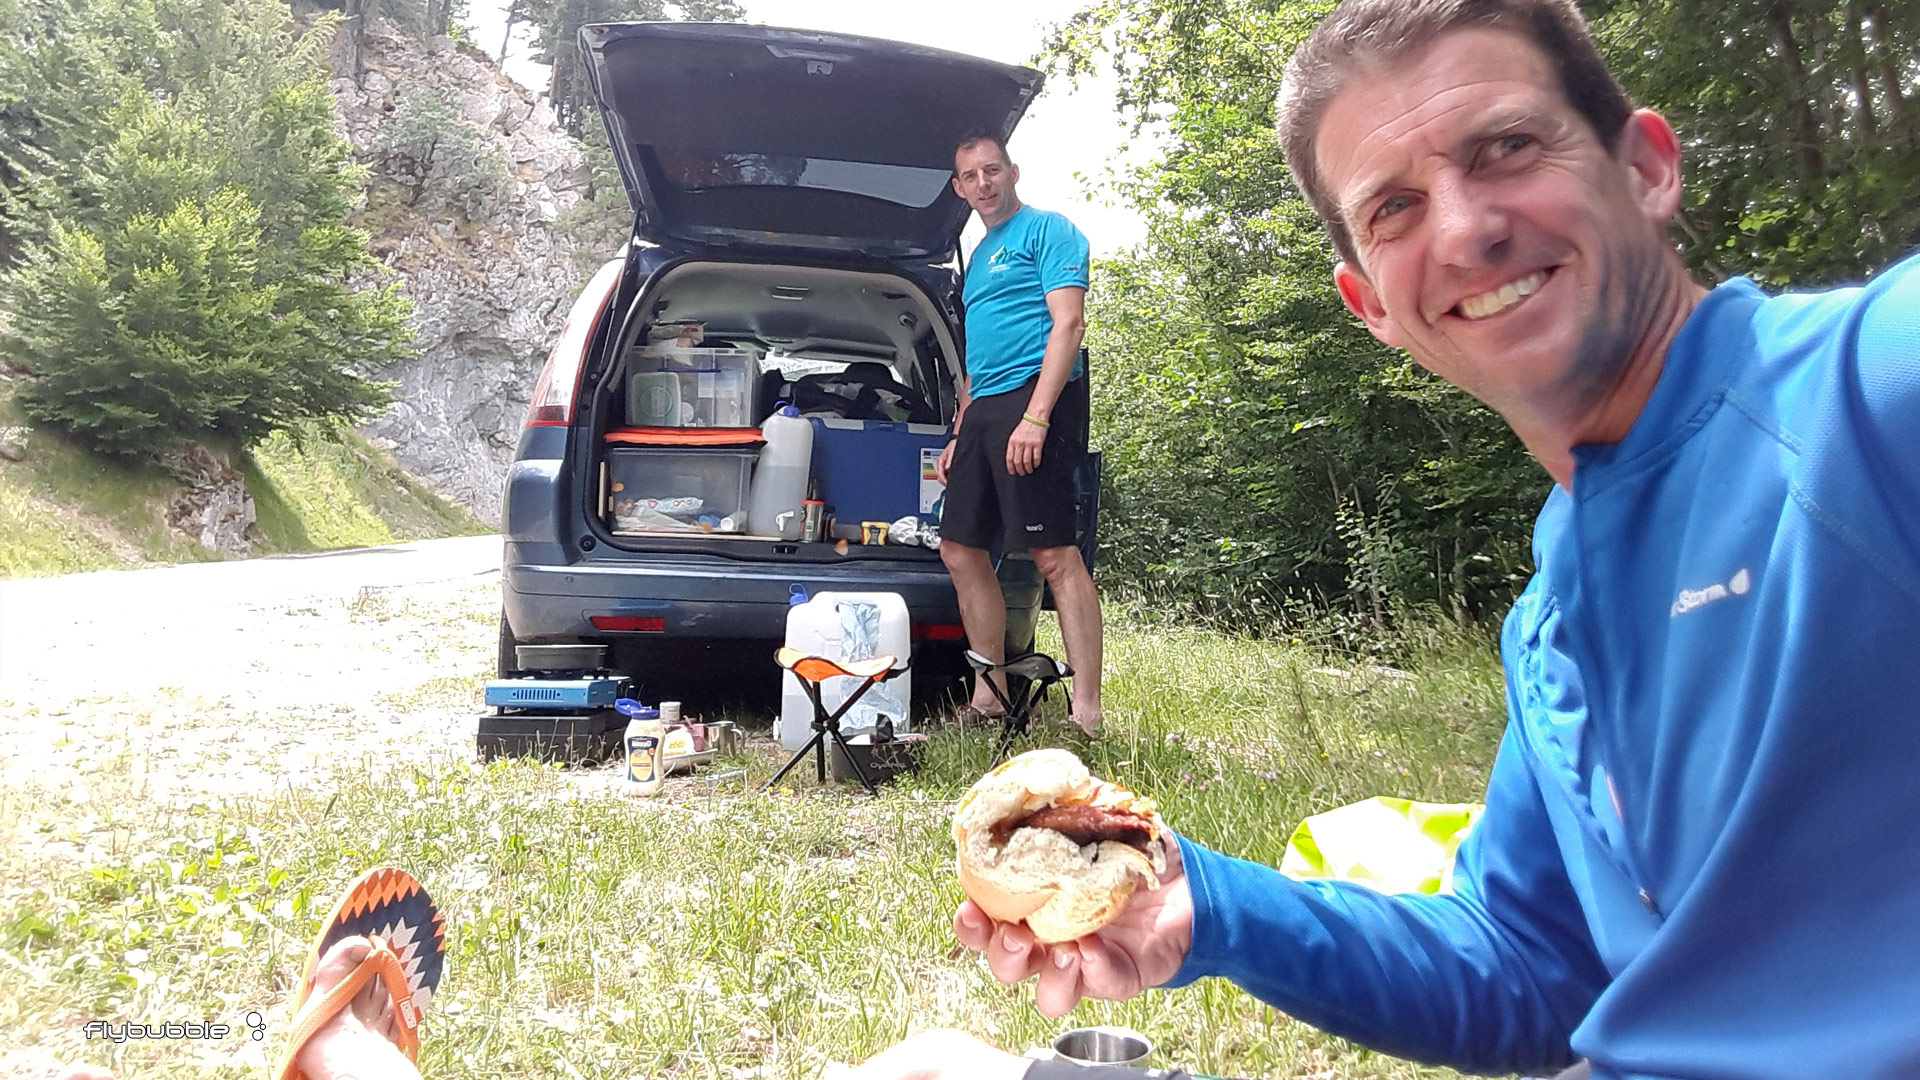 XPYR race: lunch stop